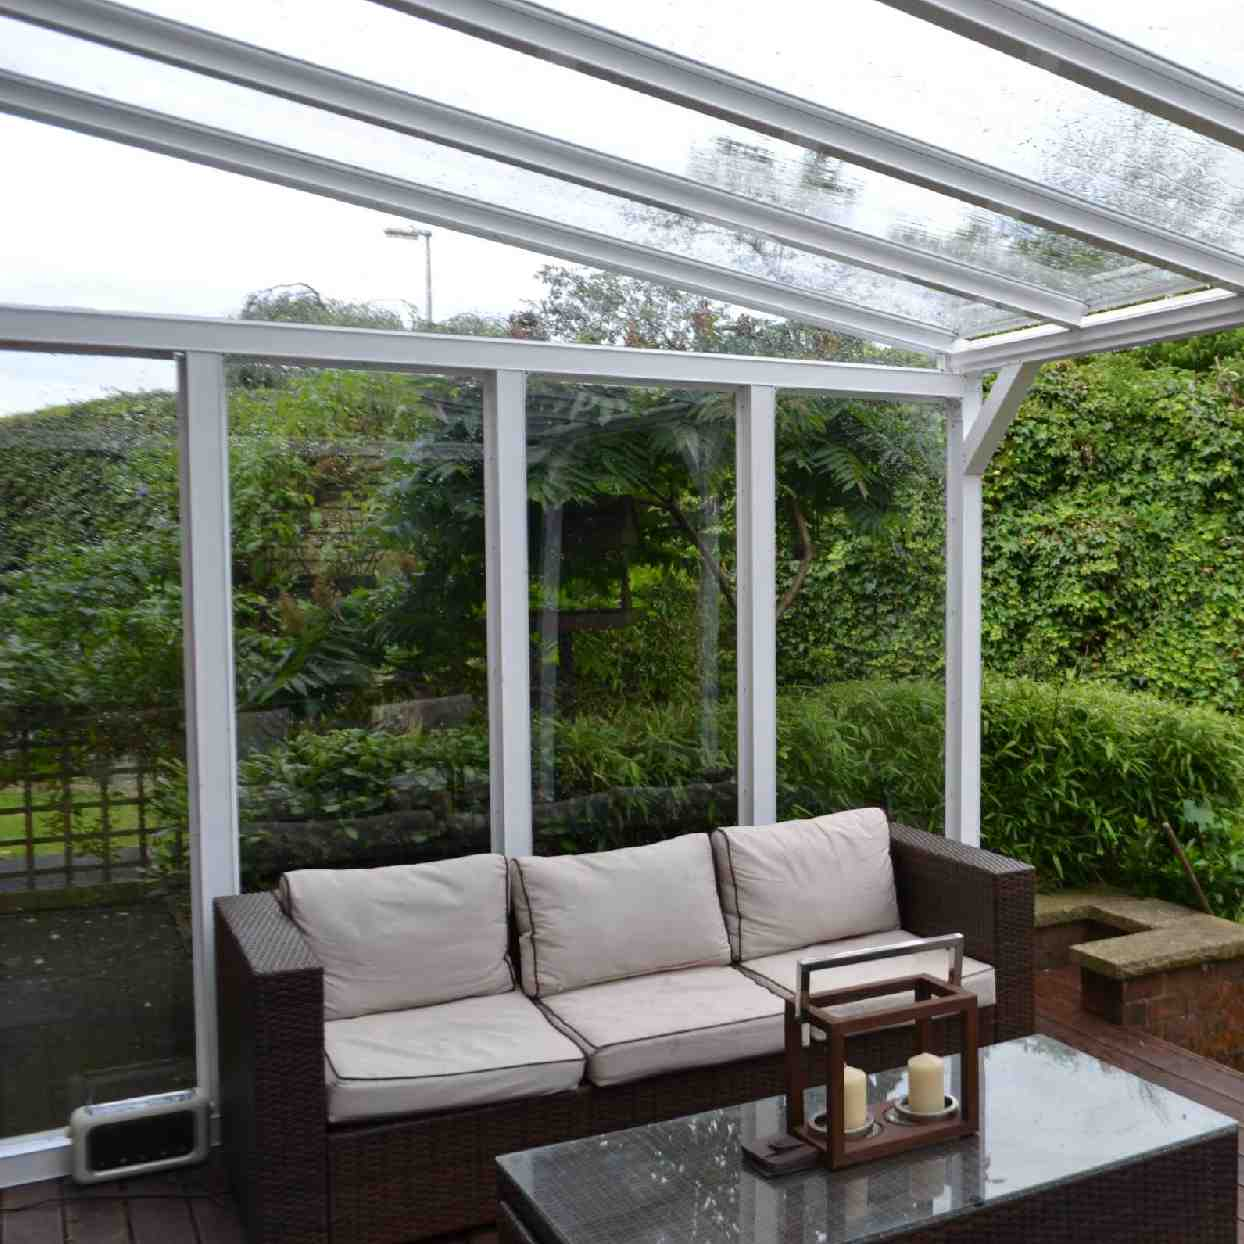 Buy Omega Verandah with 6mm Glass Clear Plate Polycarbonate Glazing - 10.5m (W) x 1.5m (P), (5) Supporting Posts online today